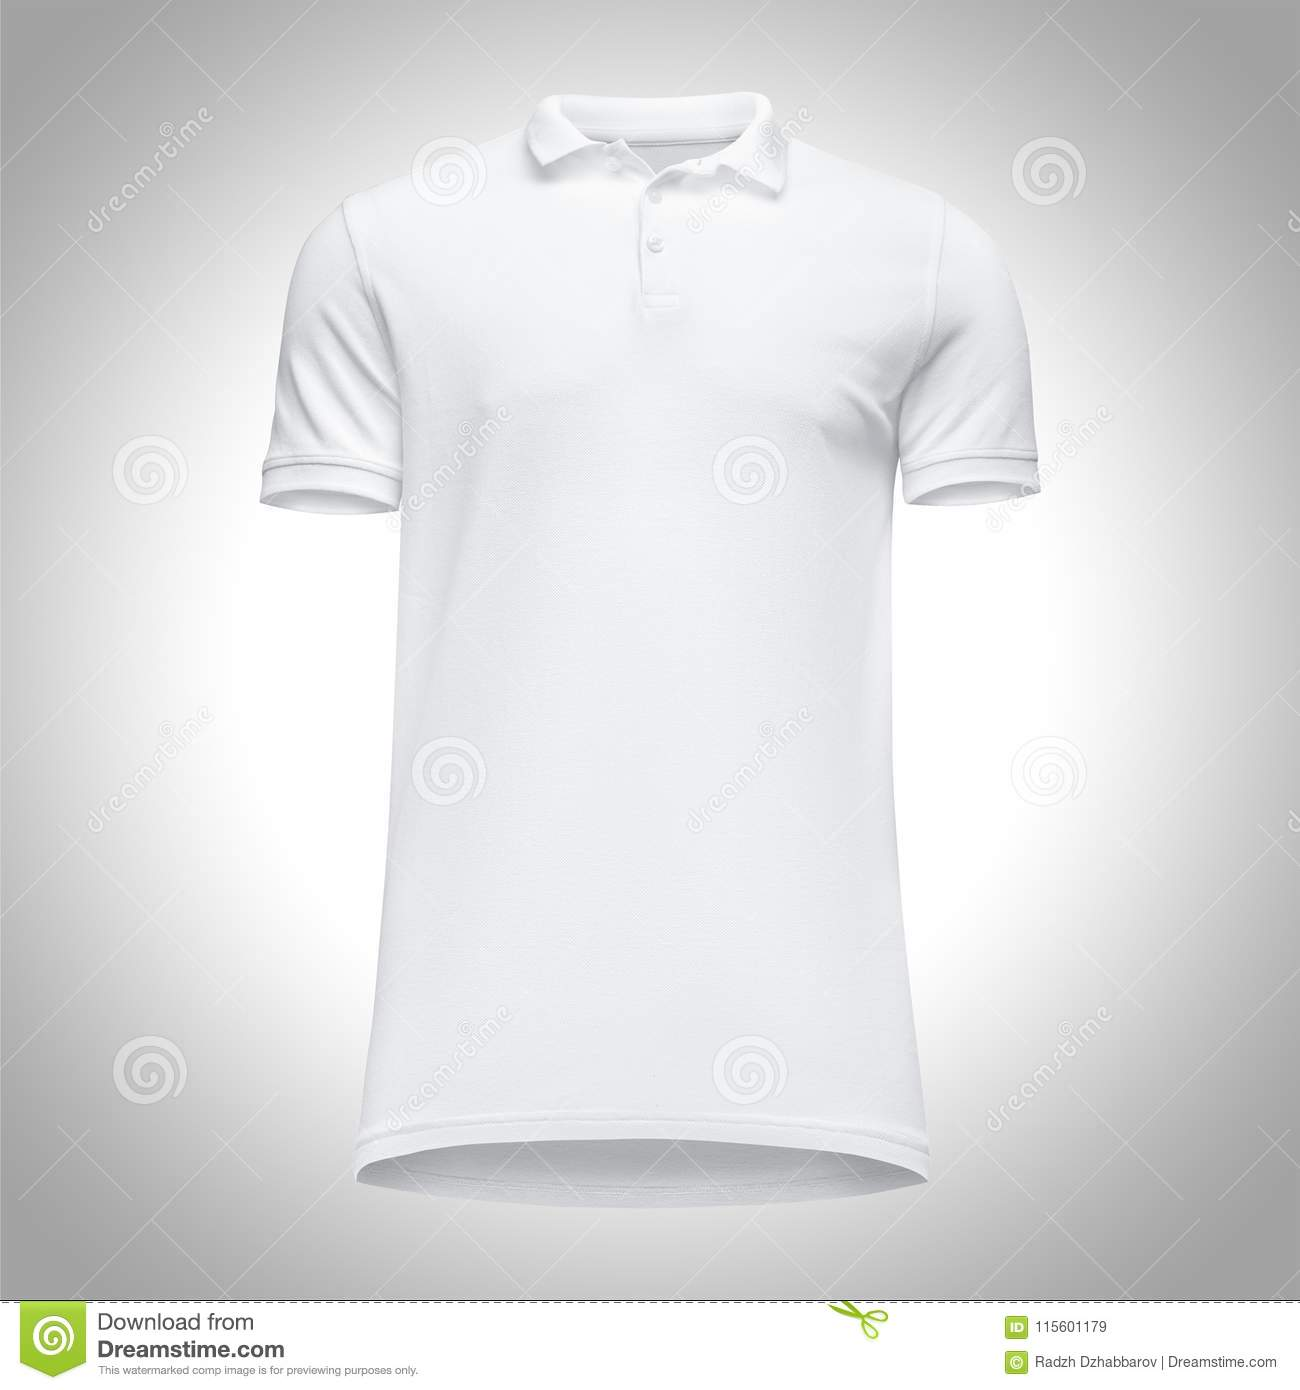 ab878182 Blank template men white polo shirt short sleeve, front view bottom-up, on